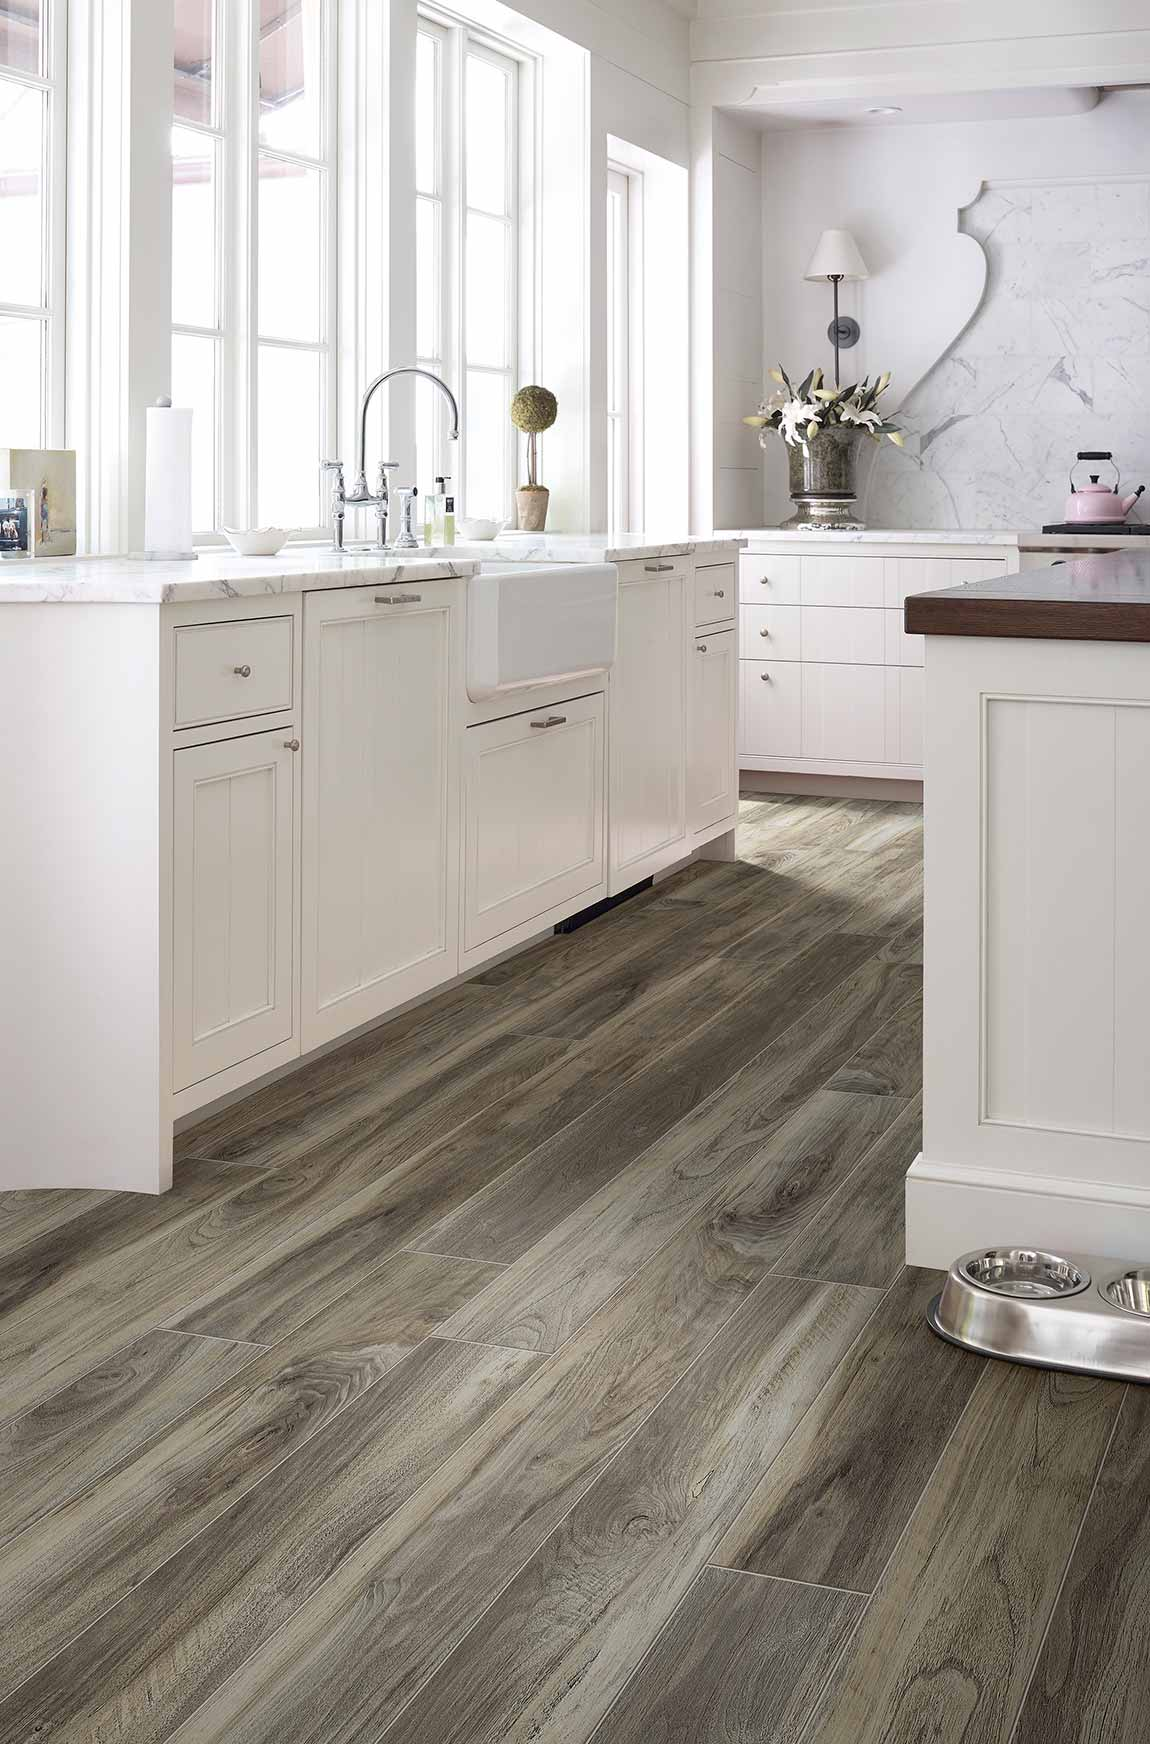 Coastal Beach House Kitchen Flooring Designs Flooring America